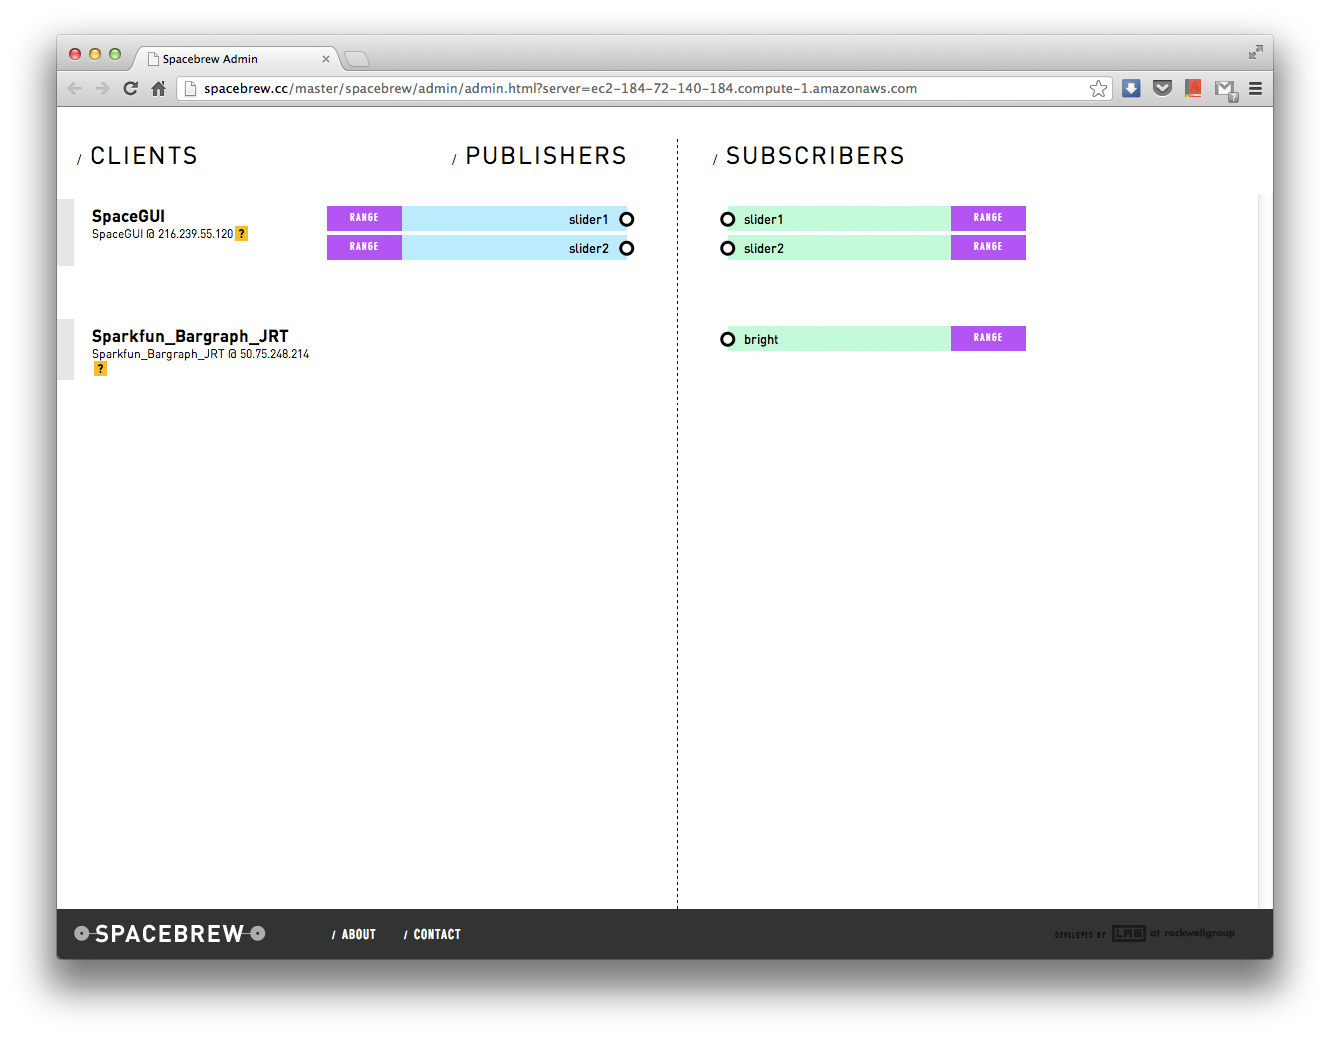 SparkFun Bar Graph and Javascript GUI clients in Spacebrew.